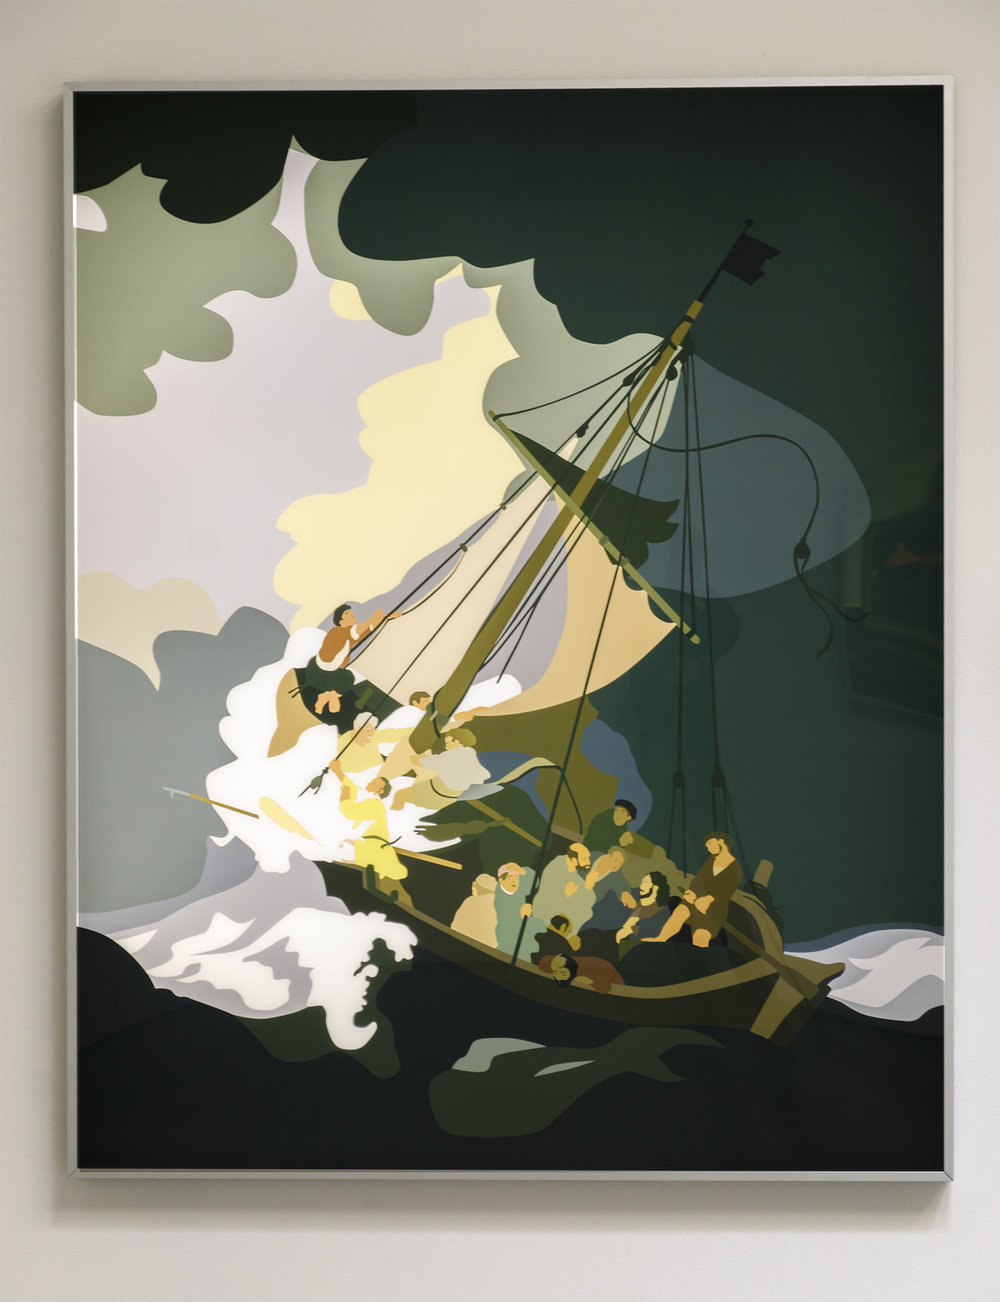 Kota Ezawa,  The Storm on the Sea of Galilee , 2015, duratrans transparency and LED lightbox, 62-1/2 x 50-1/2 x 2-3/4 inches, 159 x 128 x 7 cm, edition of 5, with 2 AP